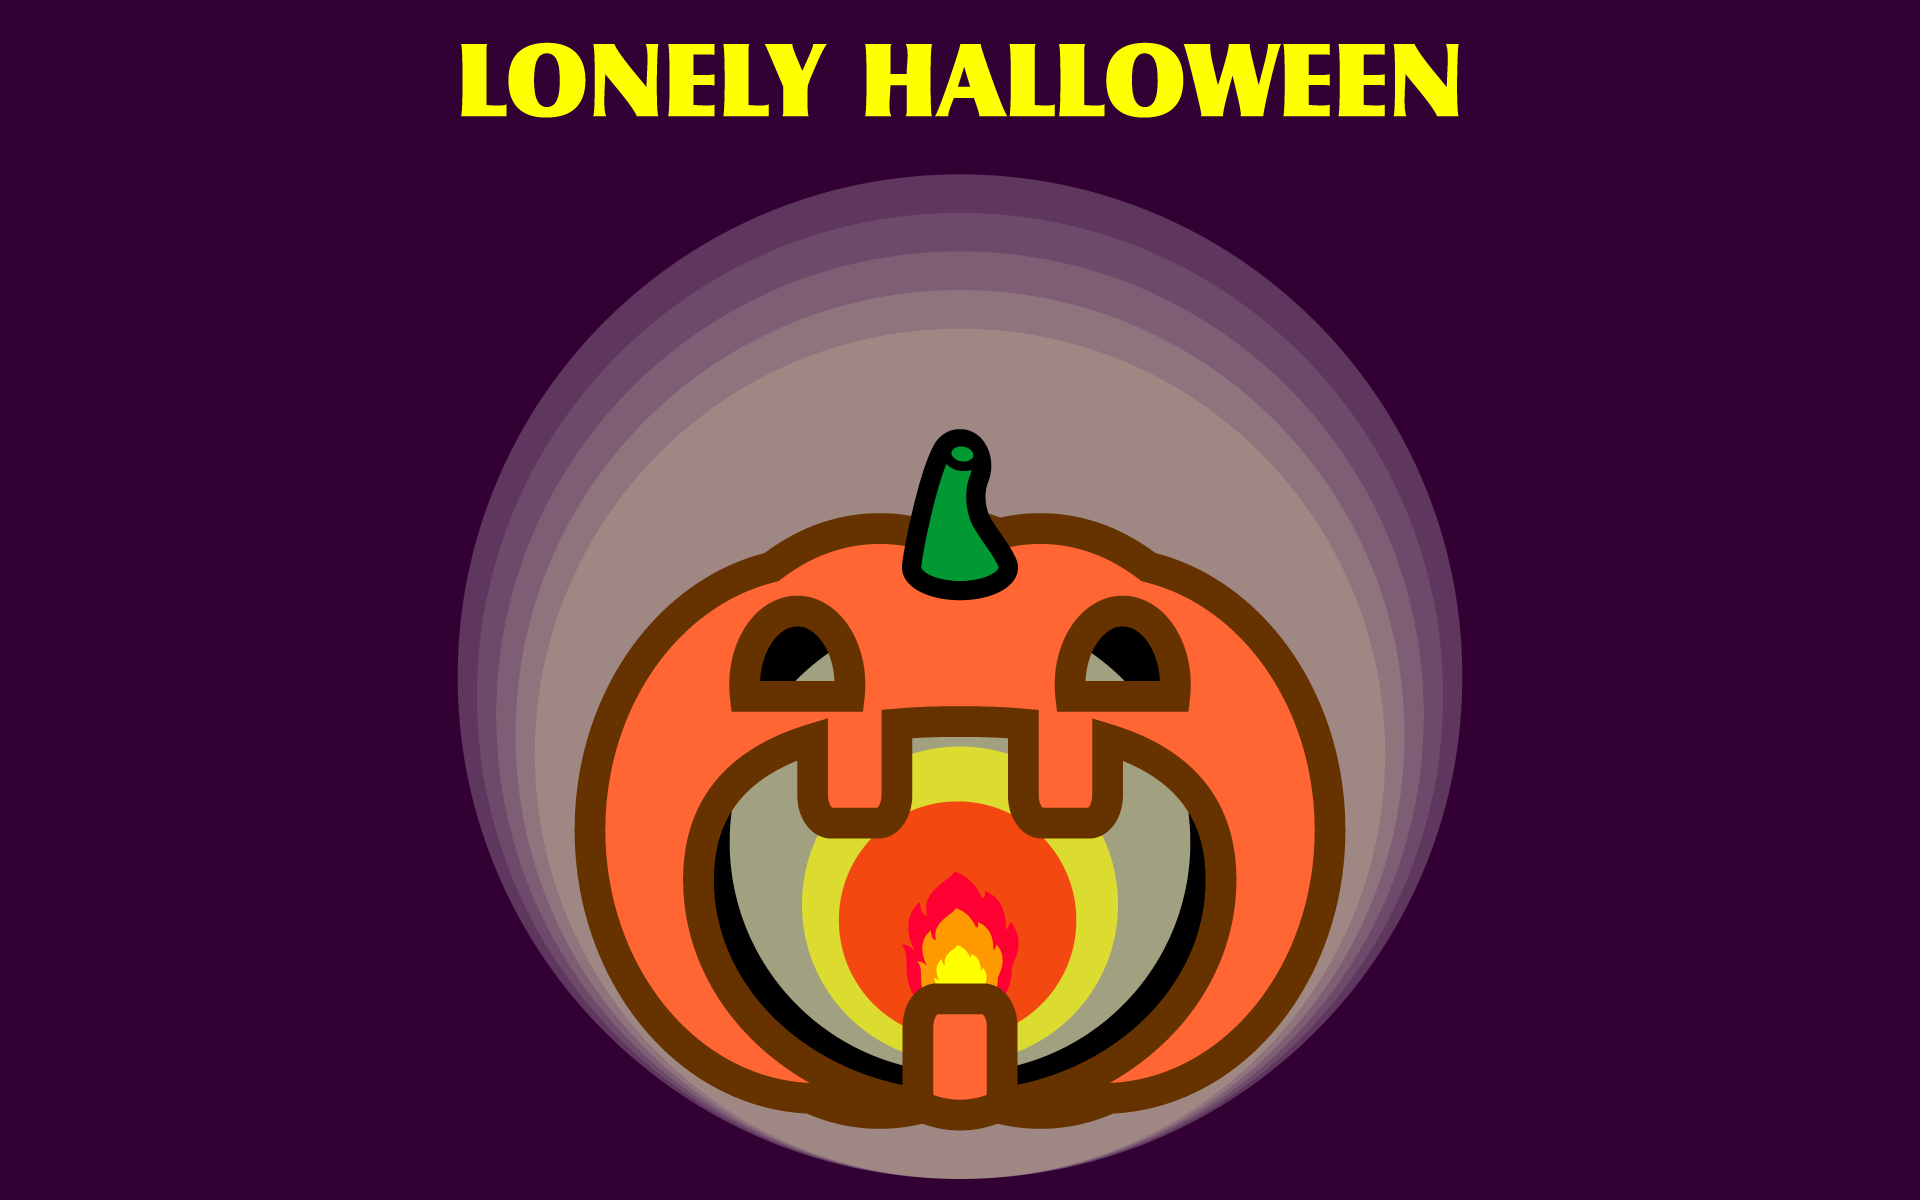 wallpaper2_lonely-halloween-pc